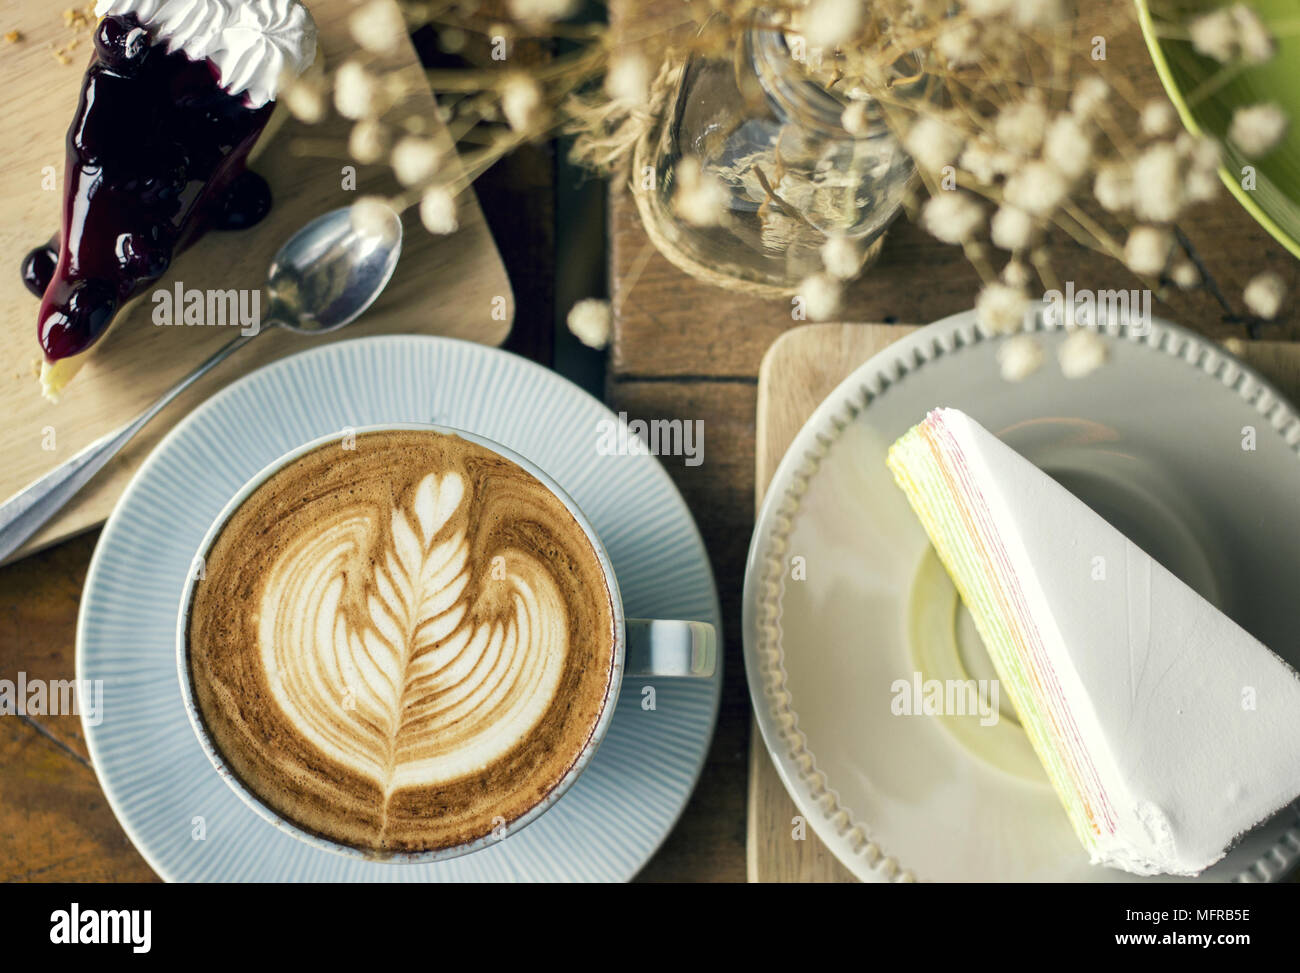 Cappuccino coffee with latte art and cake slice desserts - Stock Image